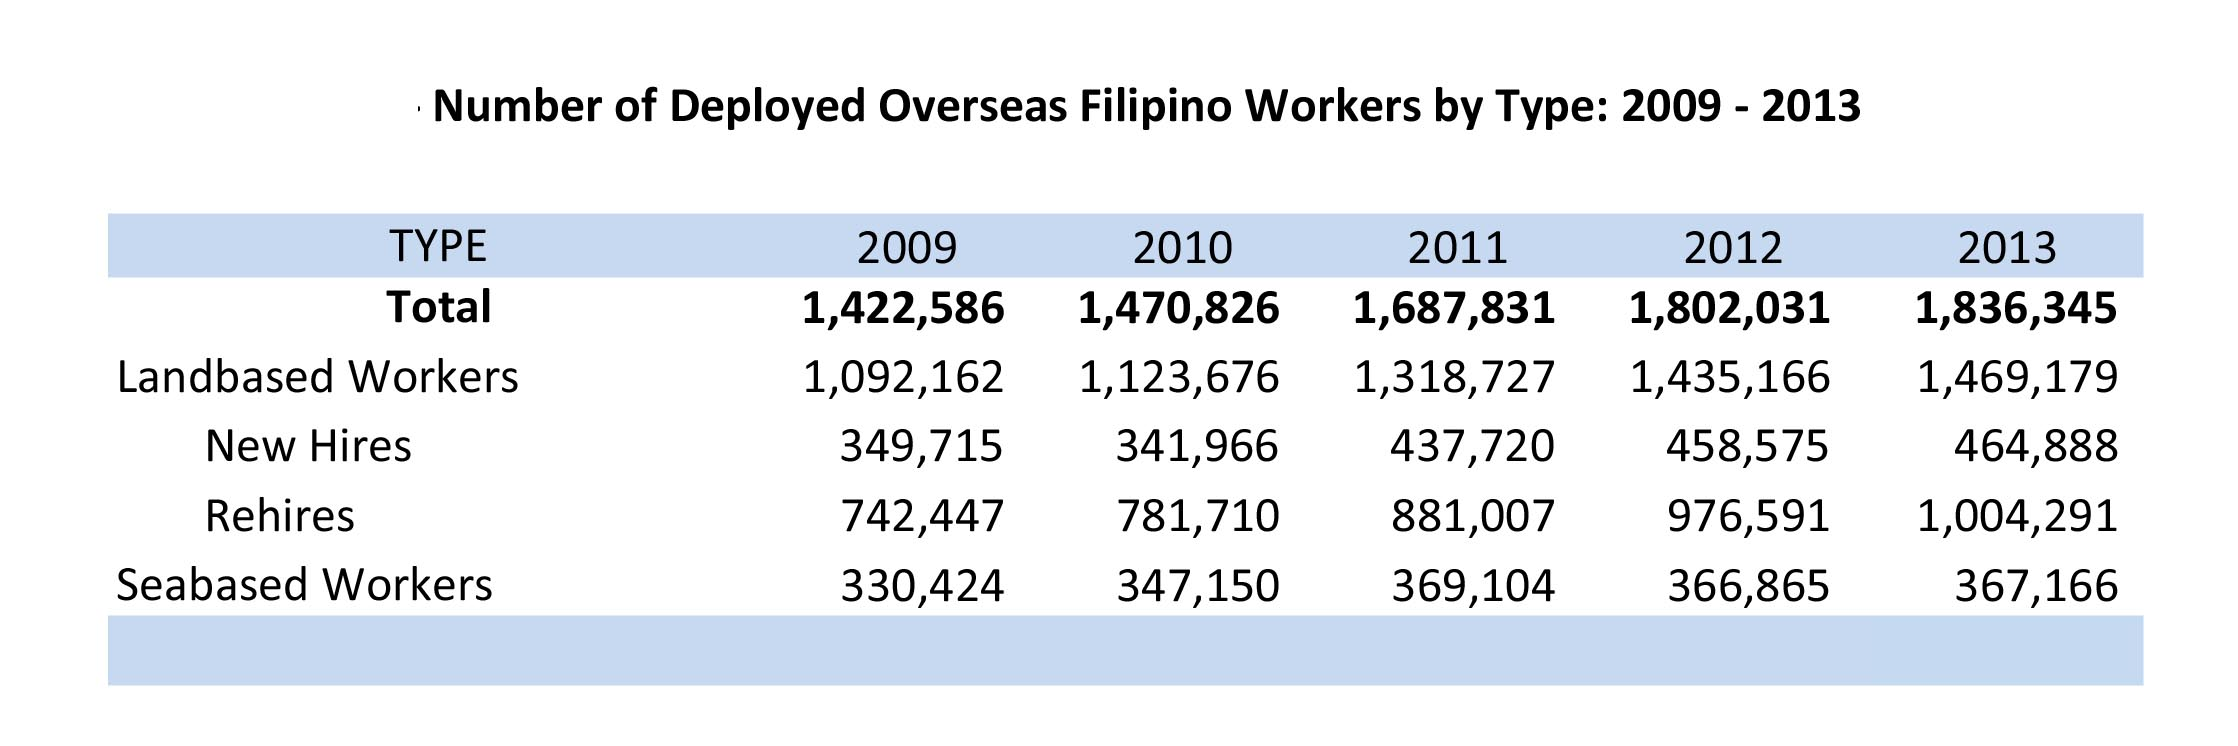 research paper on overseas filipino workers women solution Download or read online research paper on overseas filipino workers women solution on mountvernondepot the english version offers selected articles from.